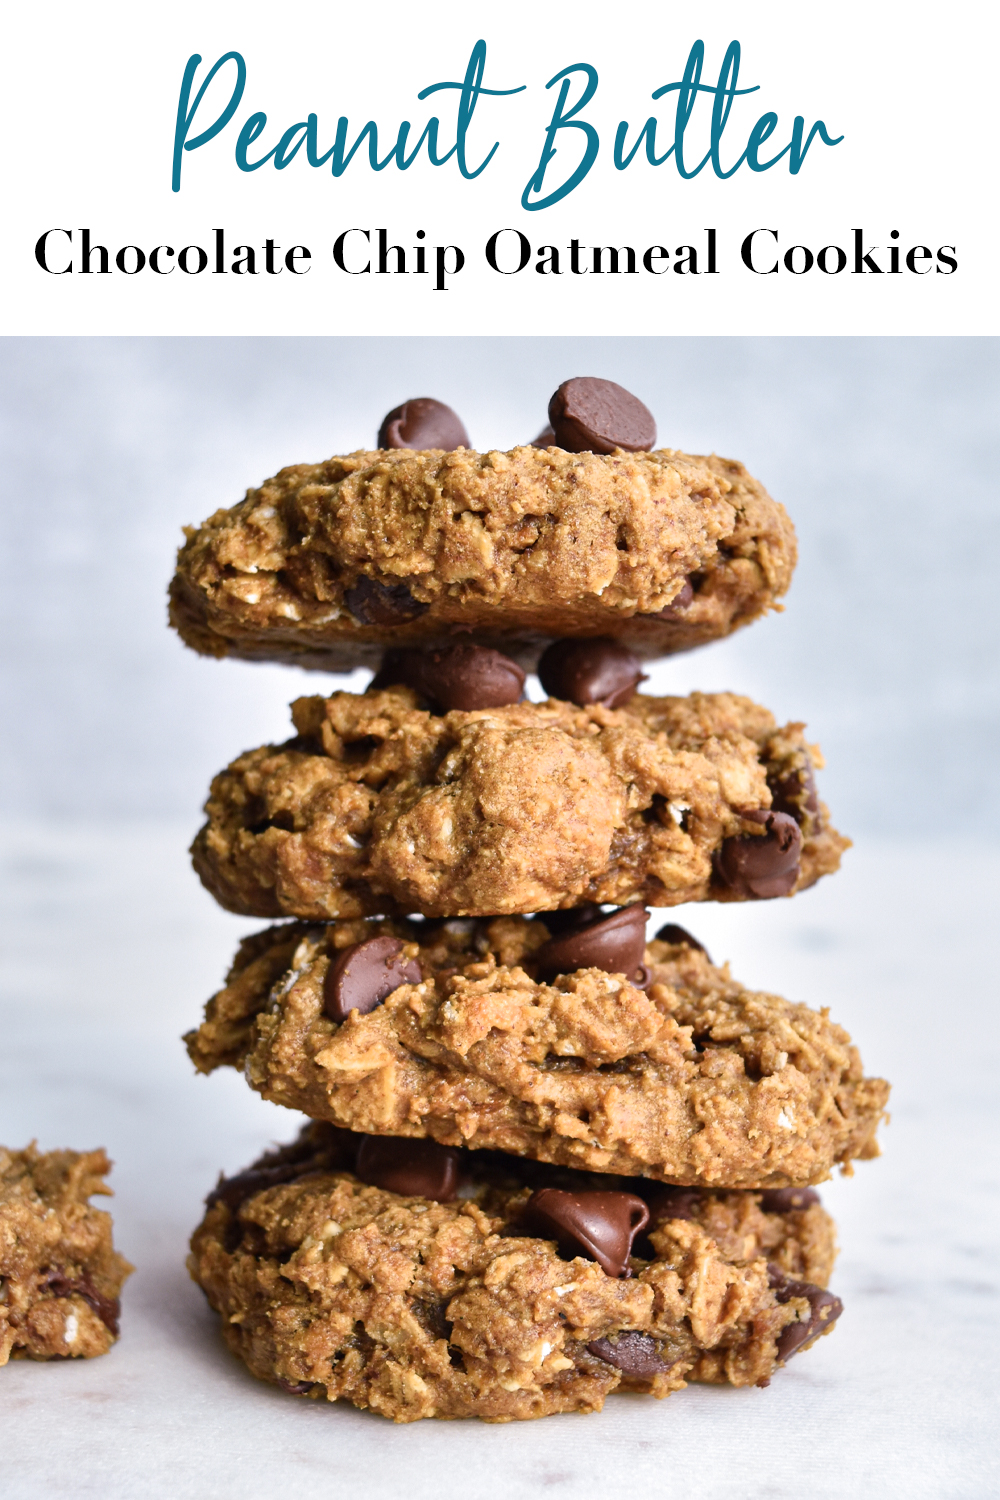 cookies in a stack